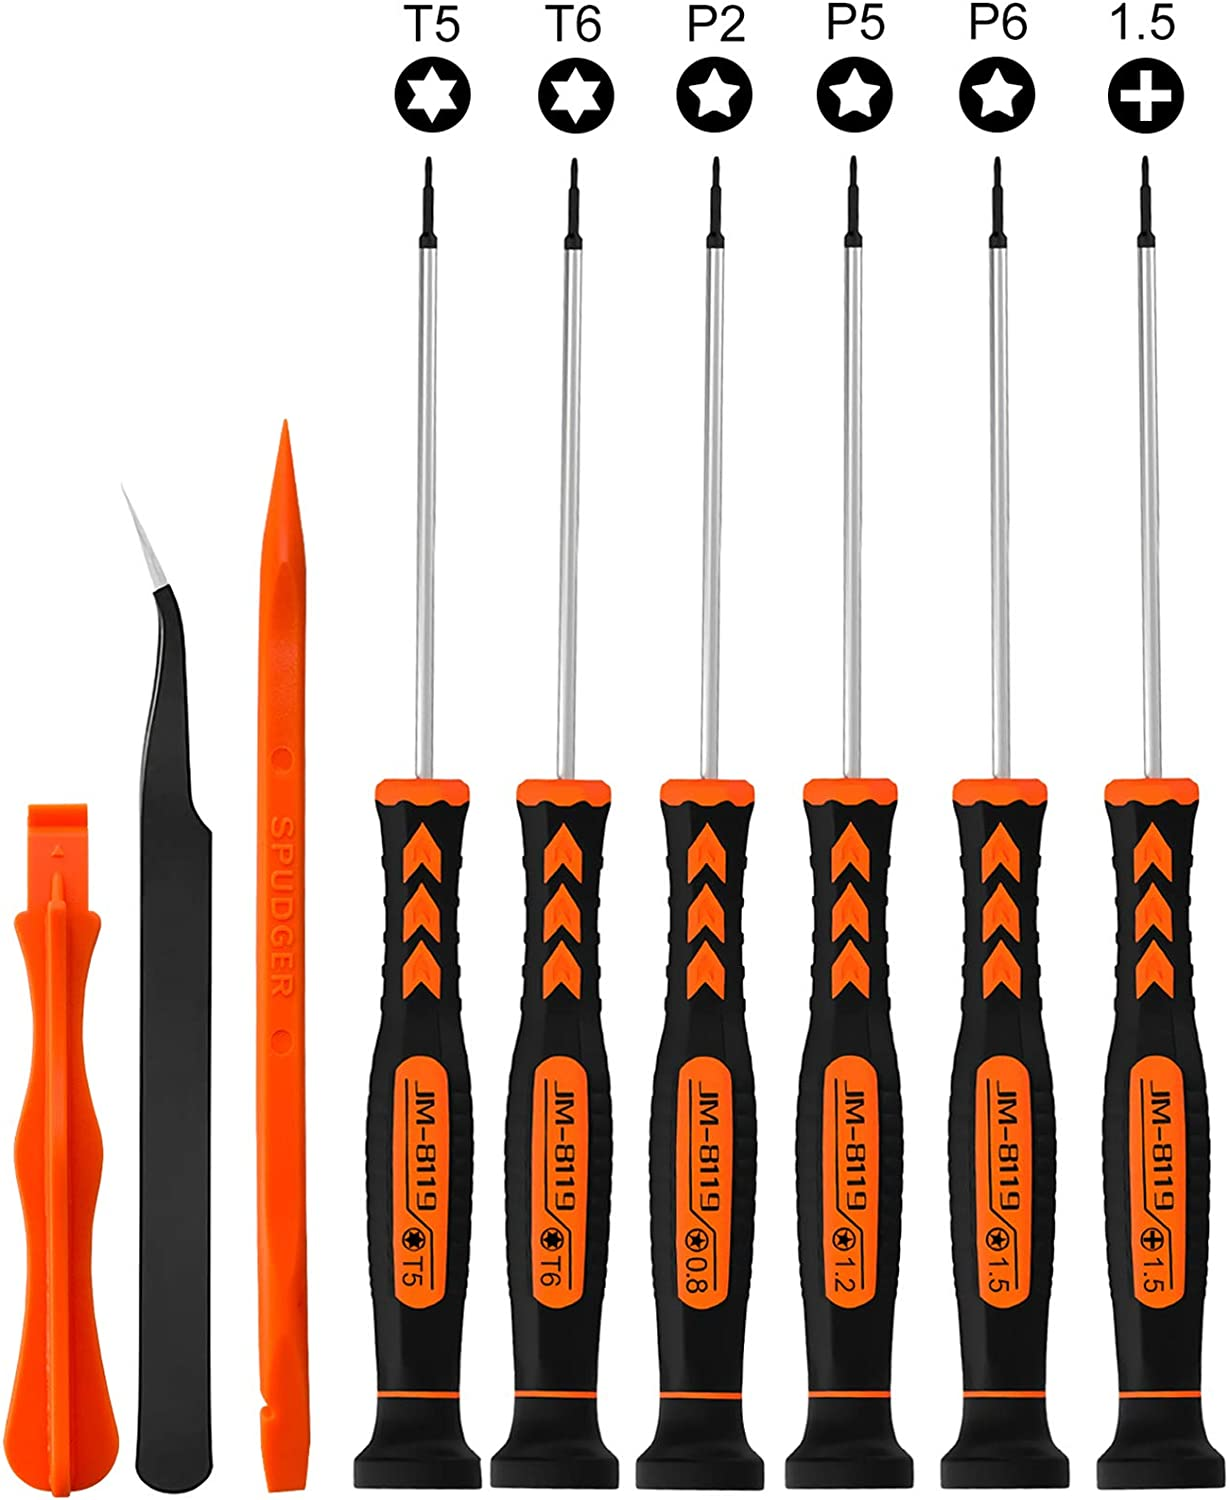 9 in1 Screwdriver Set for MacBook with T5 T6 Torx Screwdriver P2 P5 P6 Pentalobe Screwdriver Repair Tool Kit for Apple MacBook Mac Retina Pro Air